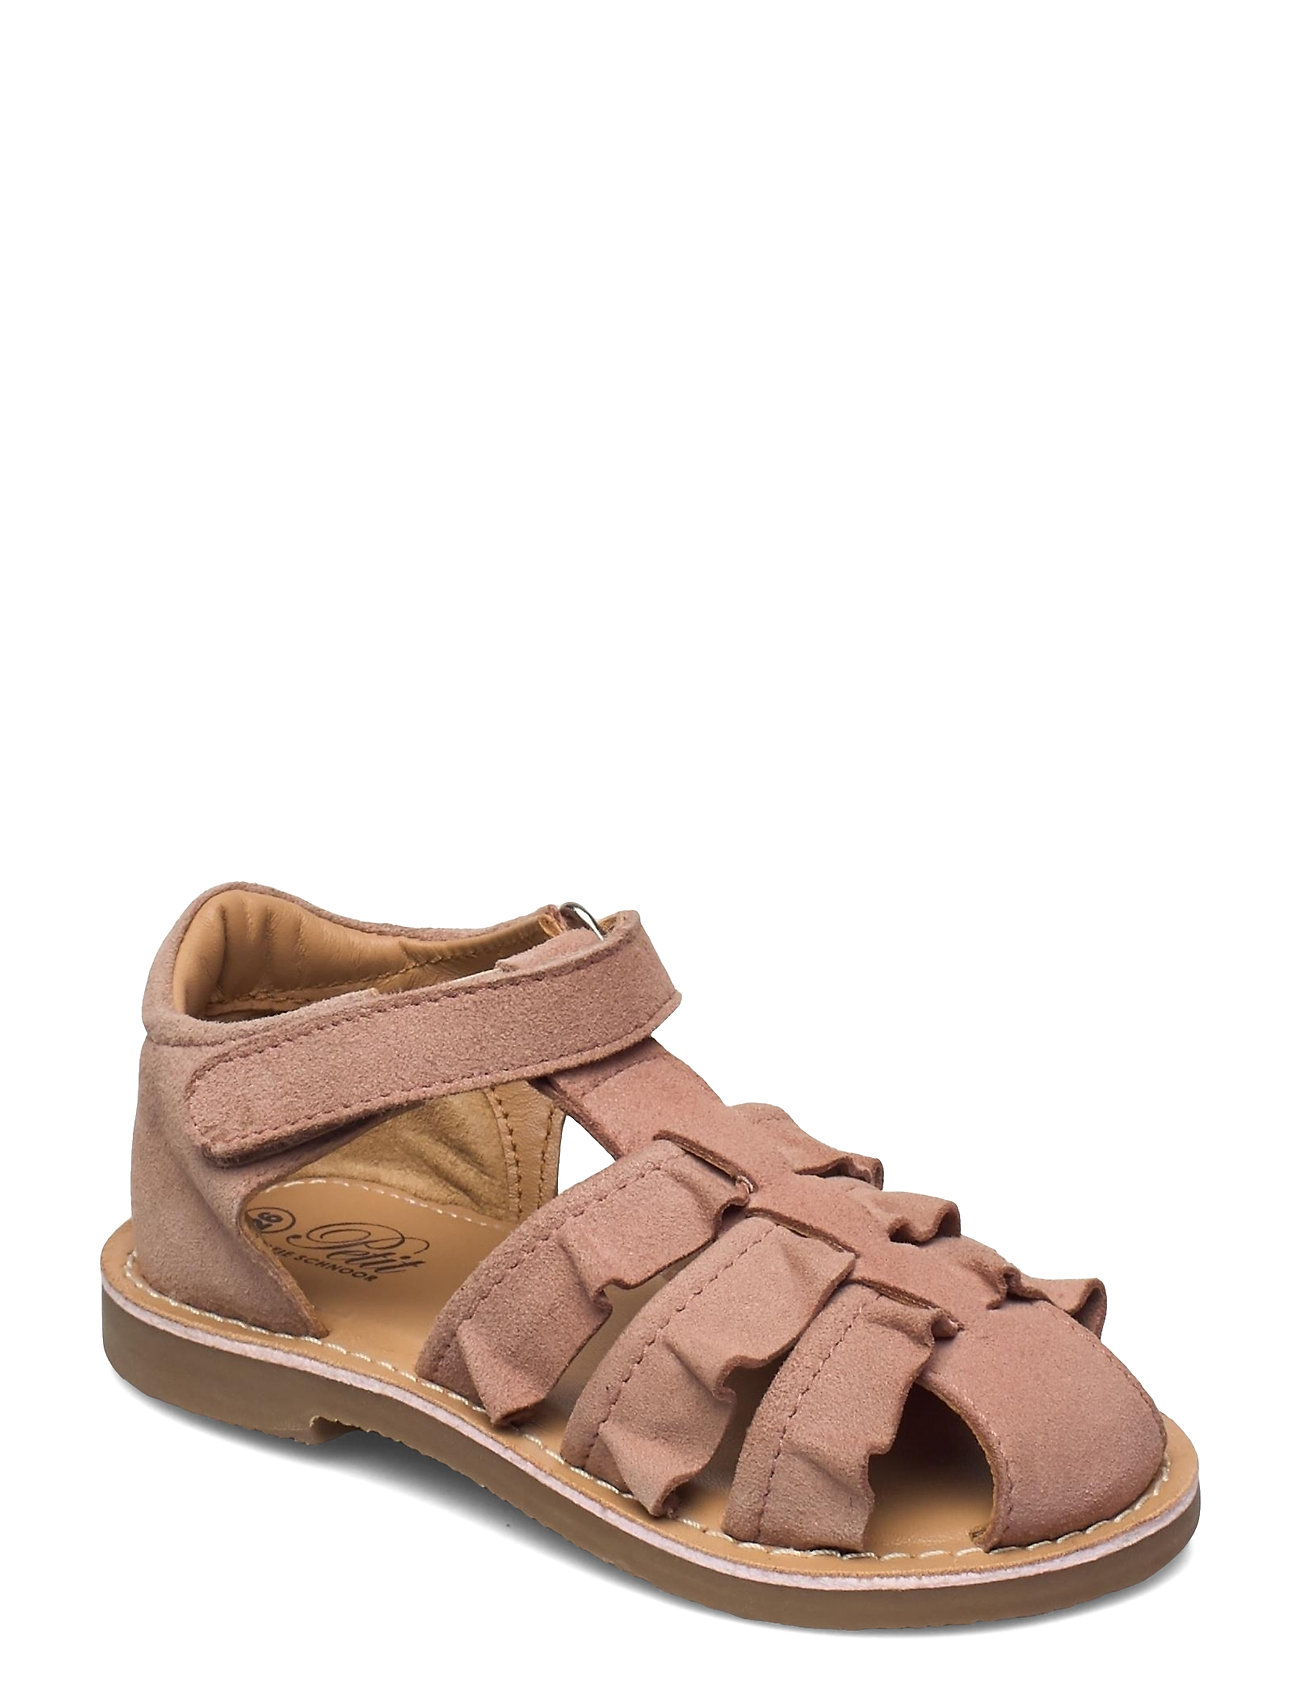 Sandal Suede Shoes Summer Shoes Sandals Lyserød Petit By Sofie Schnoor